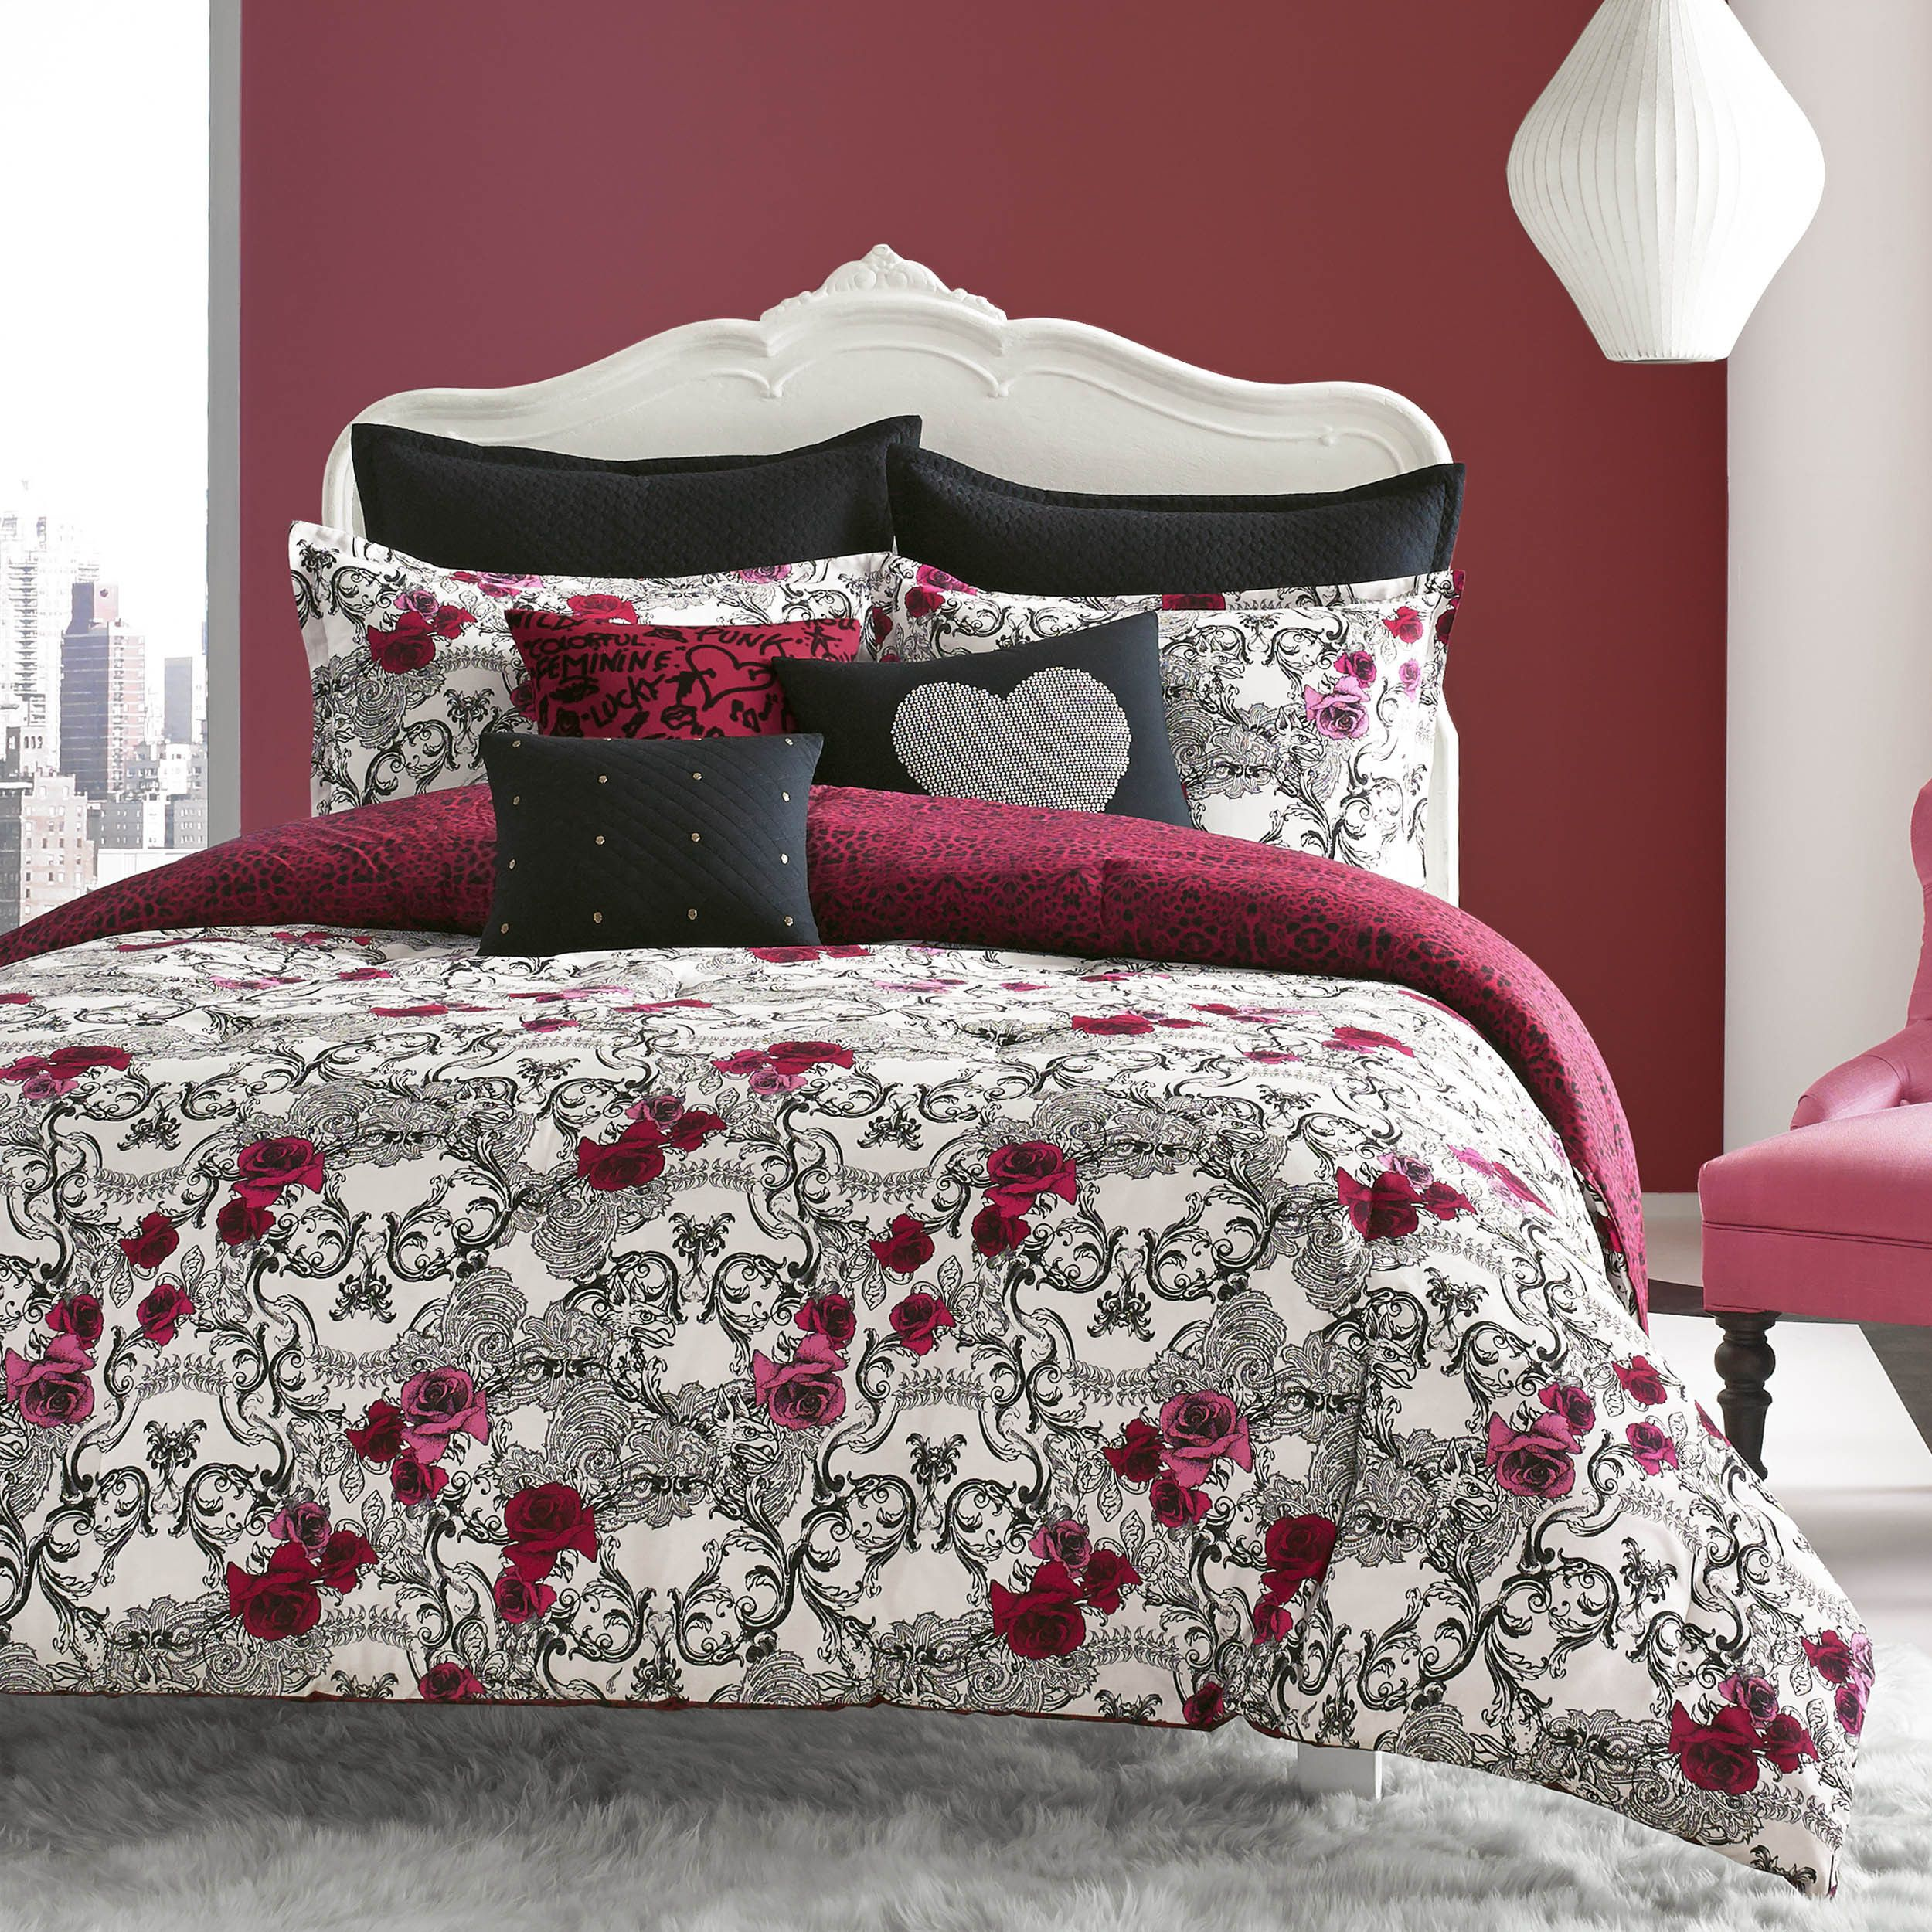 pics piece sheet styles touchofclass set and cal comforter pict pc bed purple xfile micro black at unbelievable amazing harmonee ideas suede of